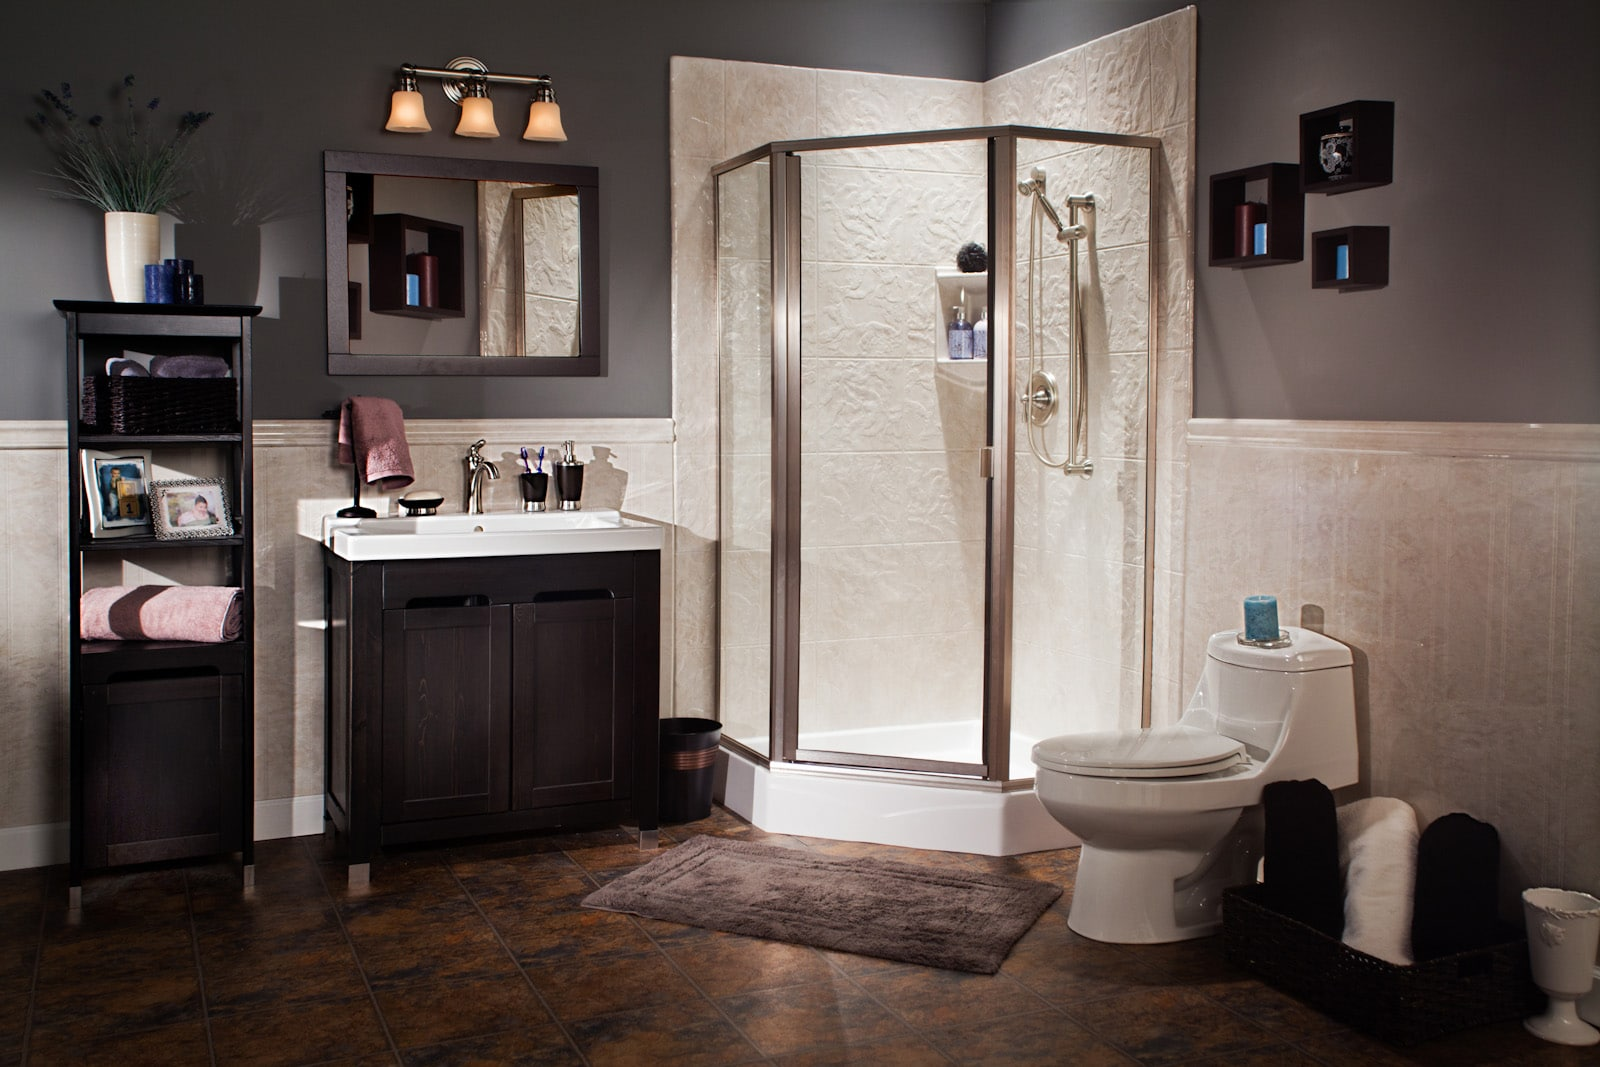 South Florida Shower Replacement - Bathrooms Plus Inc (5)